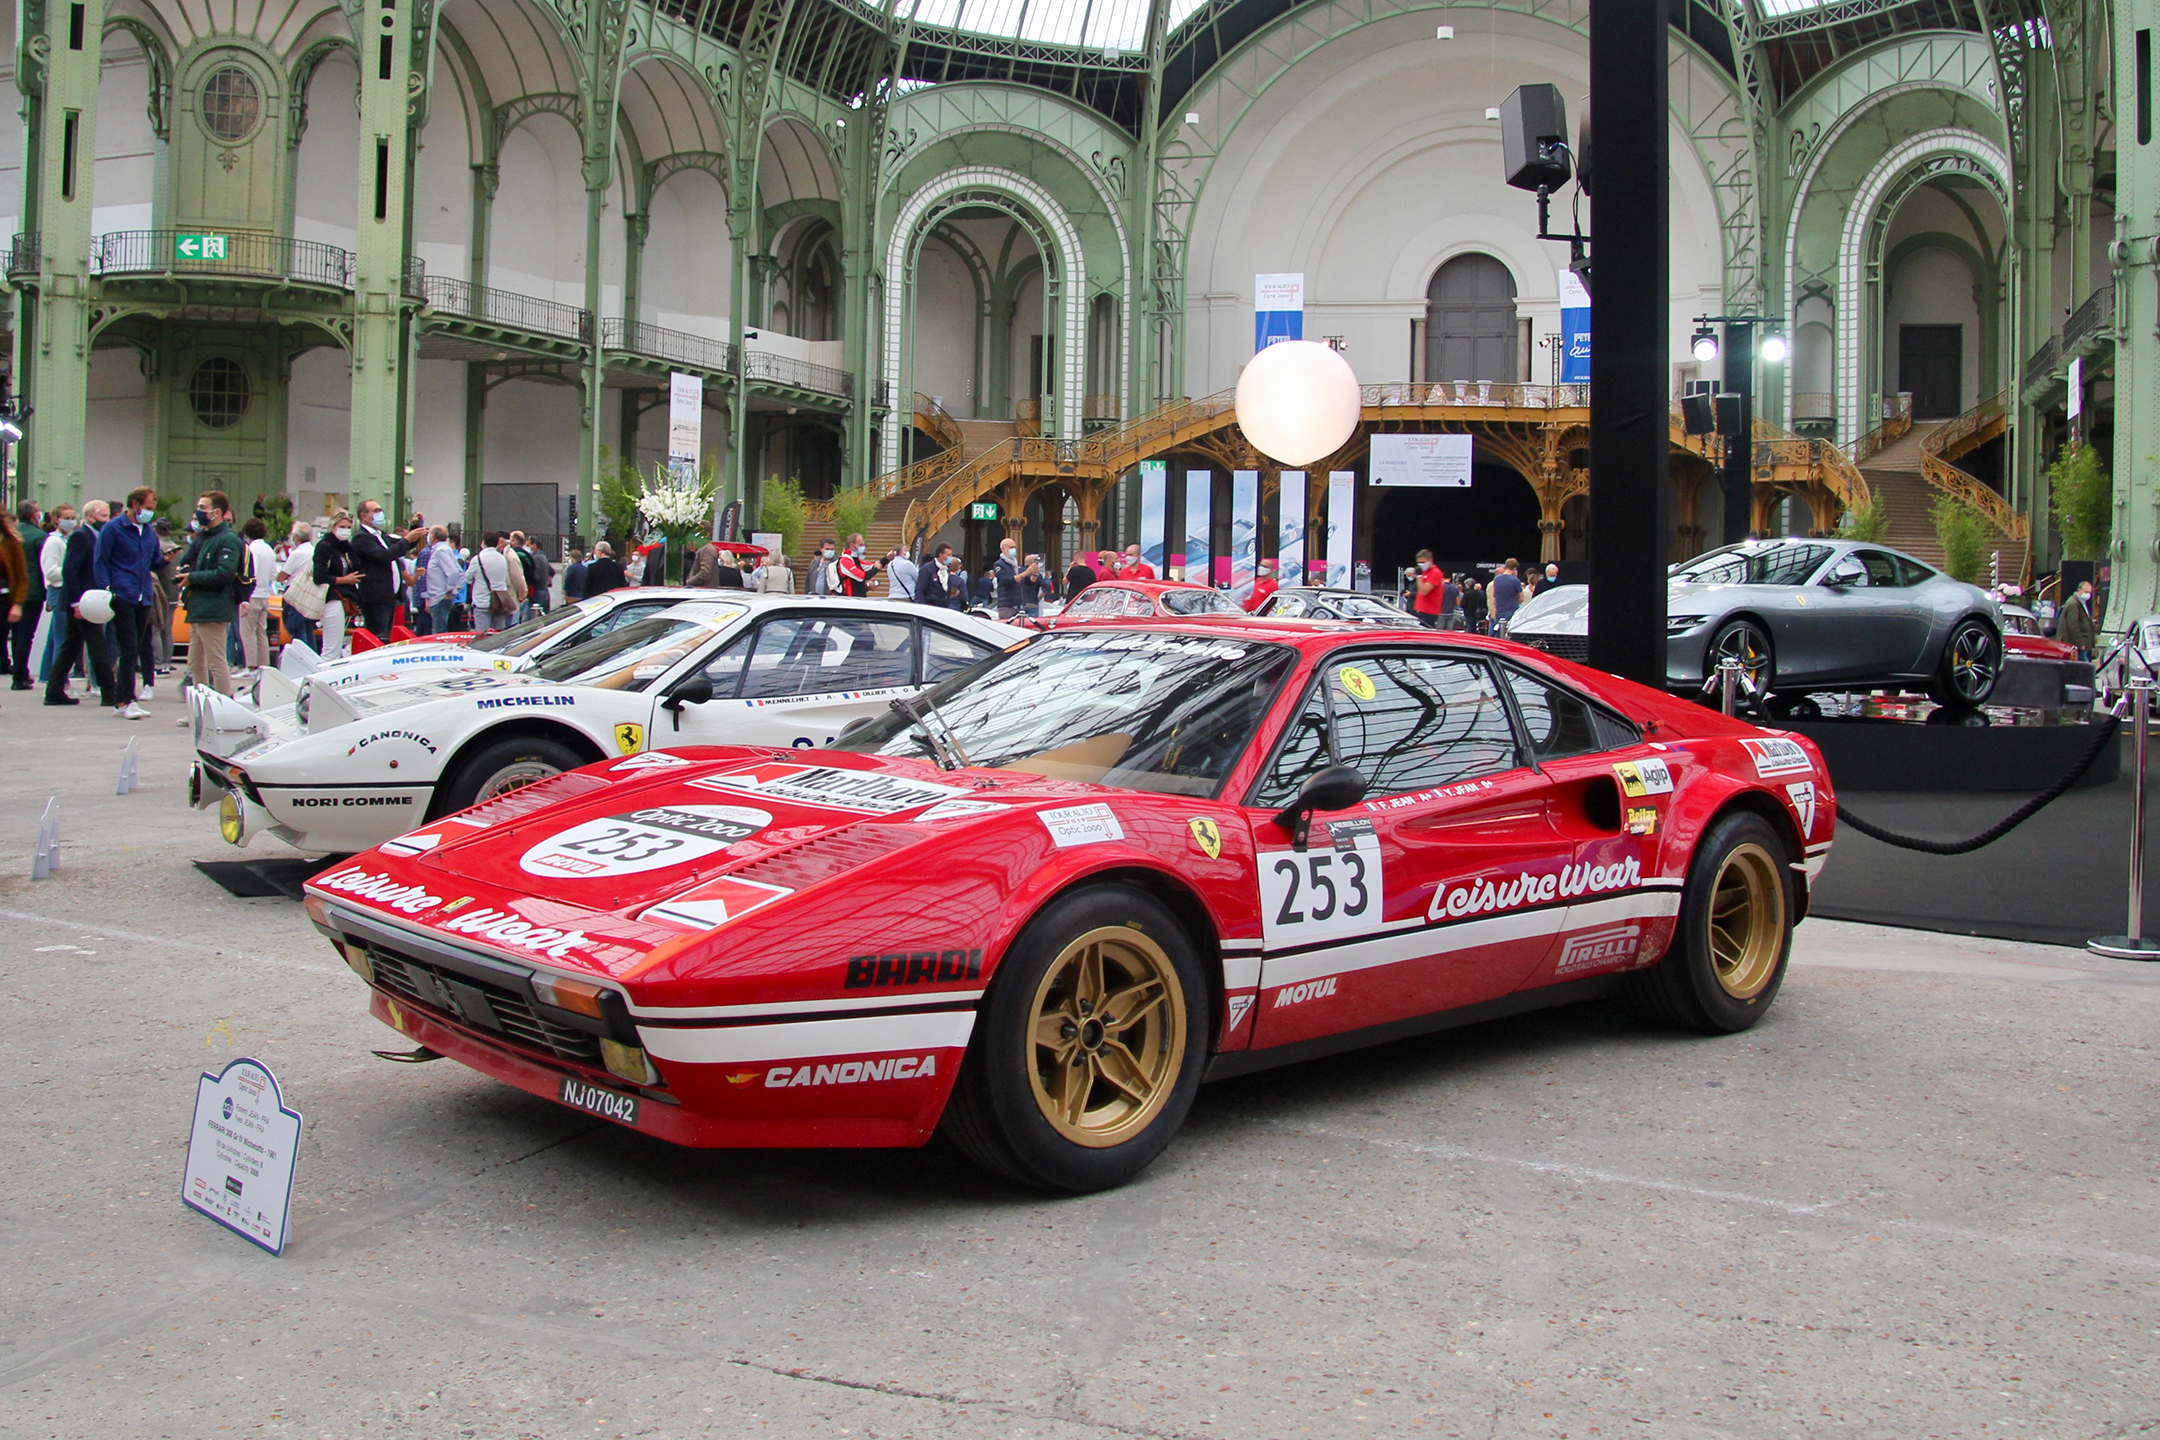 Ferrari 308 Gr IV Michelotto - expo Grand Palais - Paris - Tour Auto 2020 - photo Ludo Ferrari